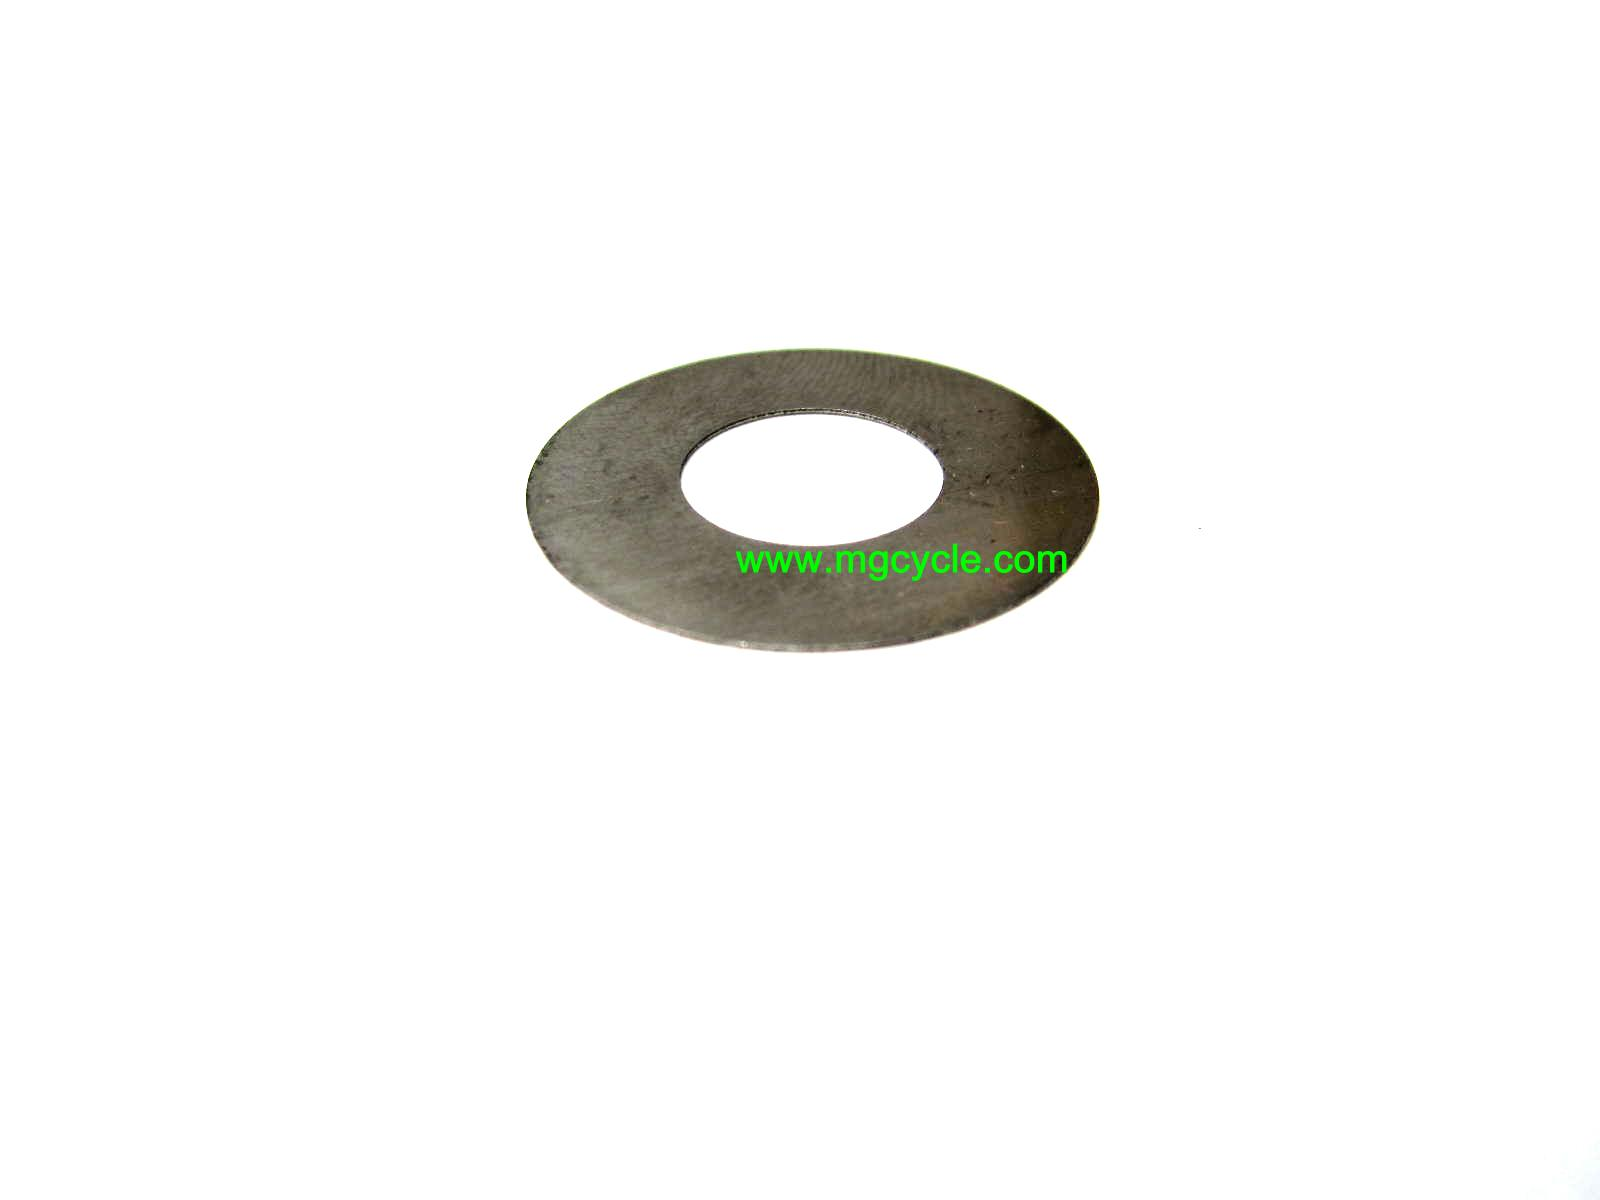 Valve spring shim, 0.3mm thick